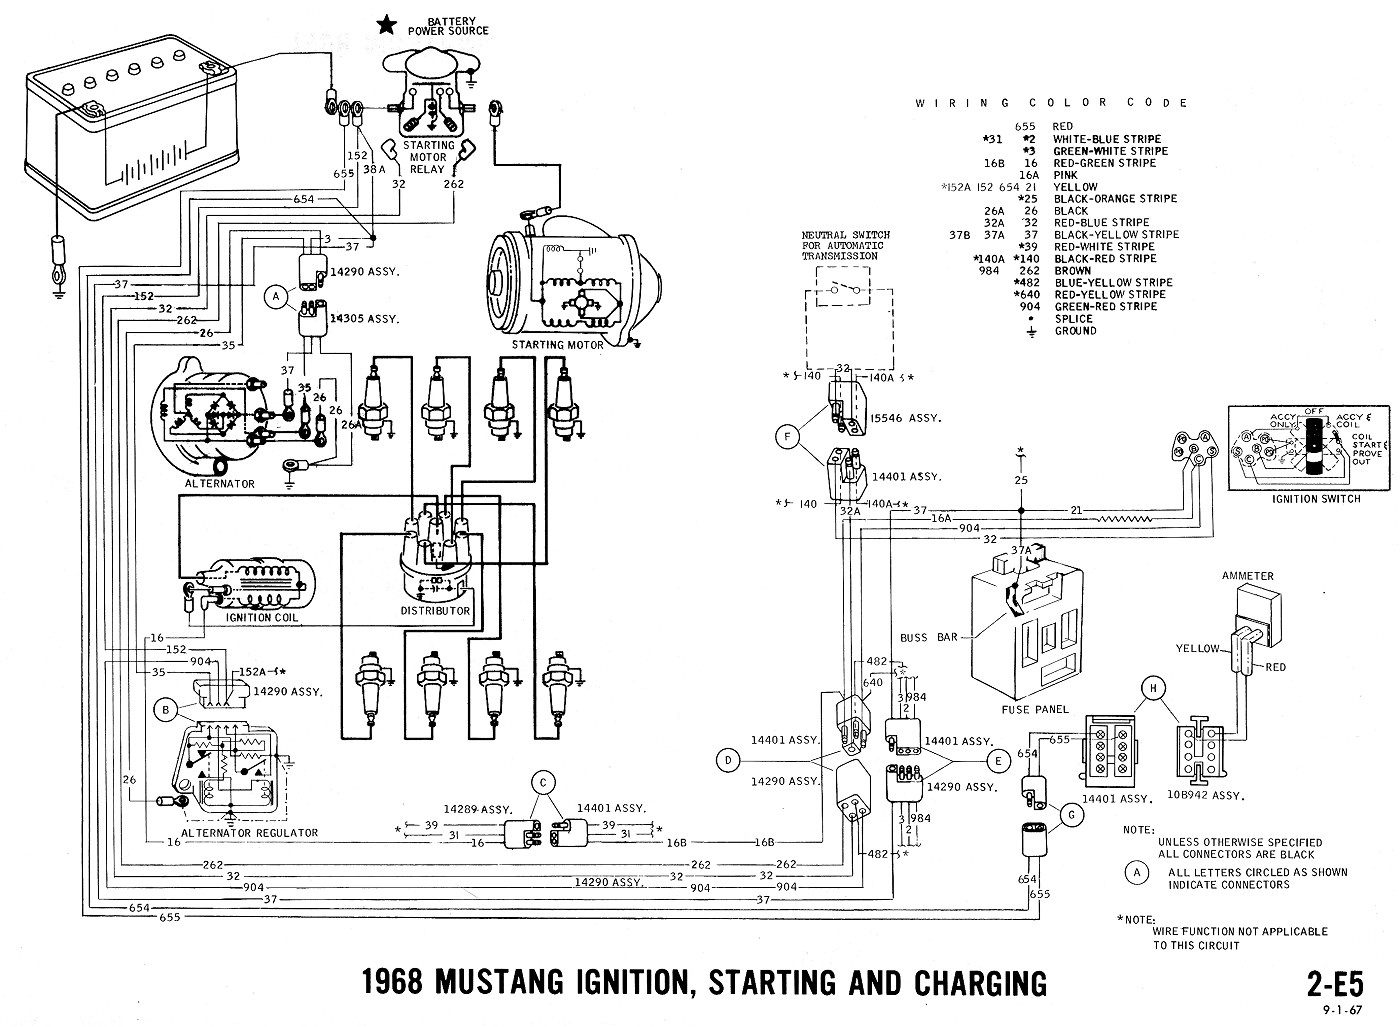 1968 Mustang Wiring Diagrams Evolving Software General Alarm Diagram Charging Starting